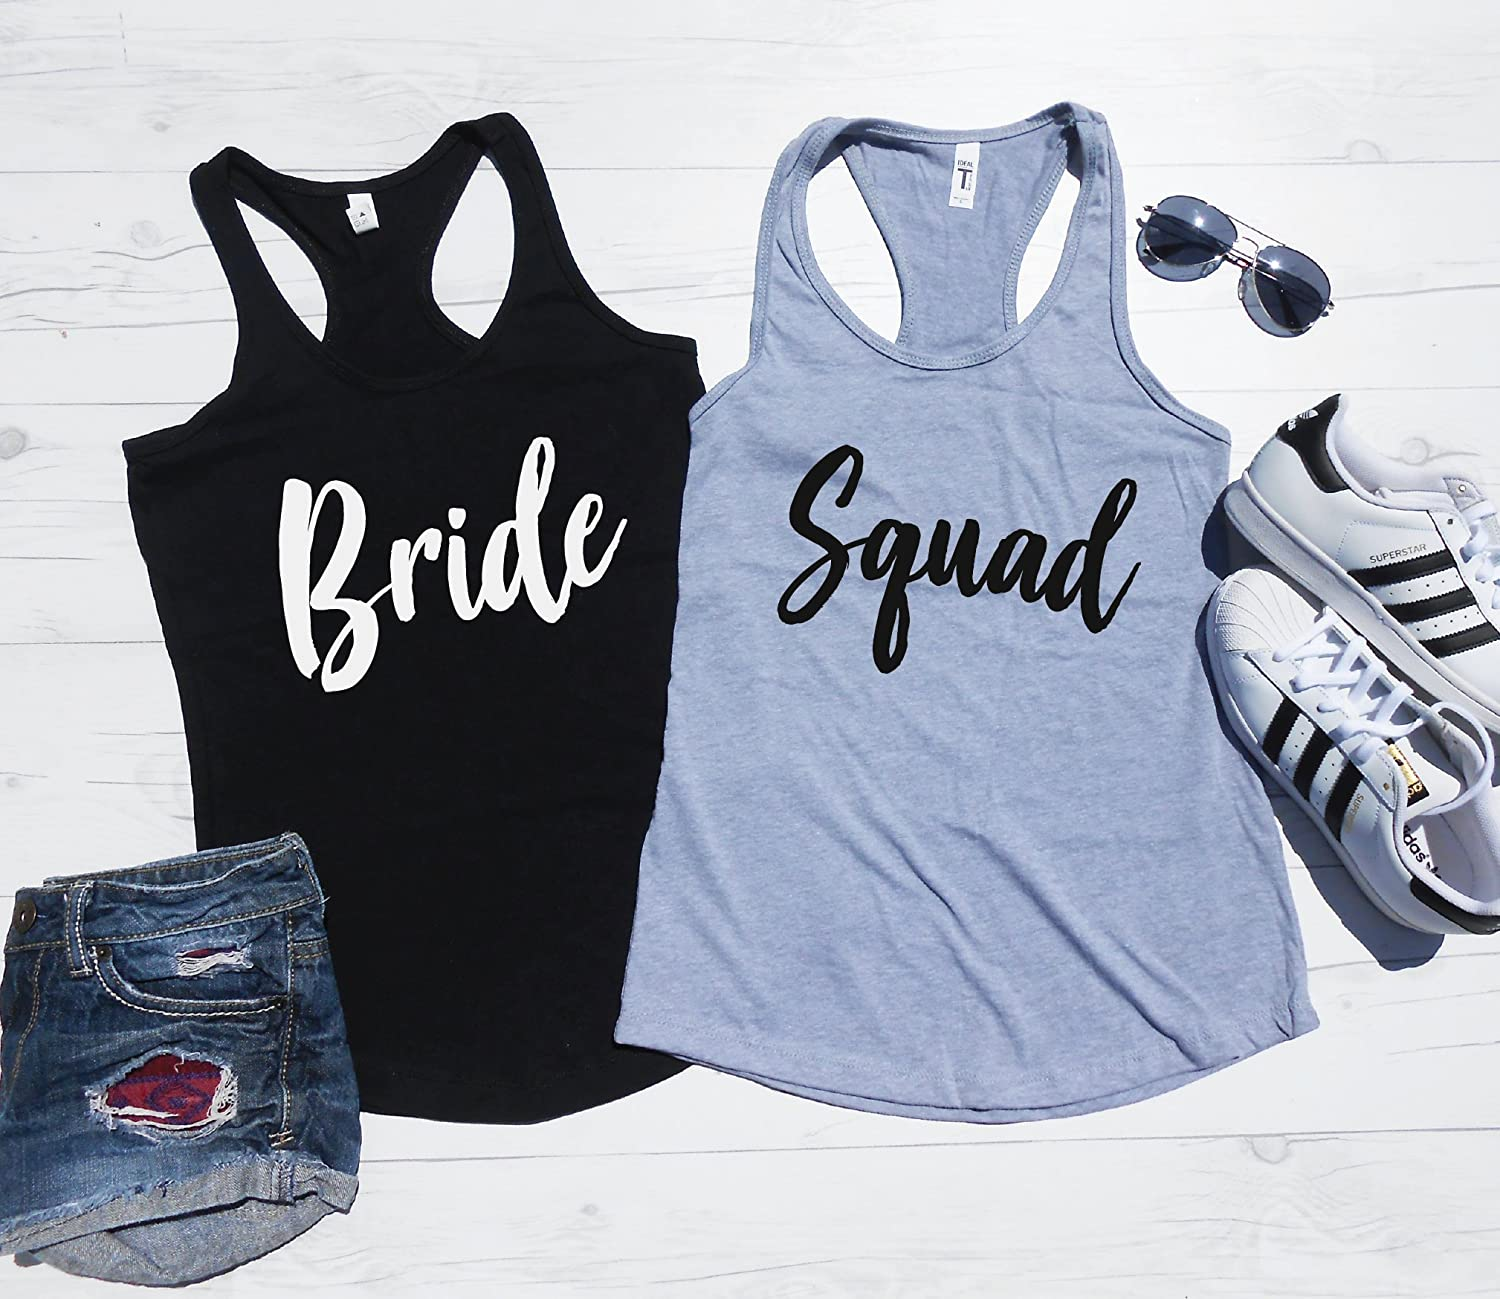 ac4896c2207b2 Top 10 wholesale Bridal Party Tank Tops - Chinabrands.com